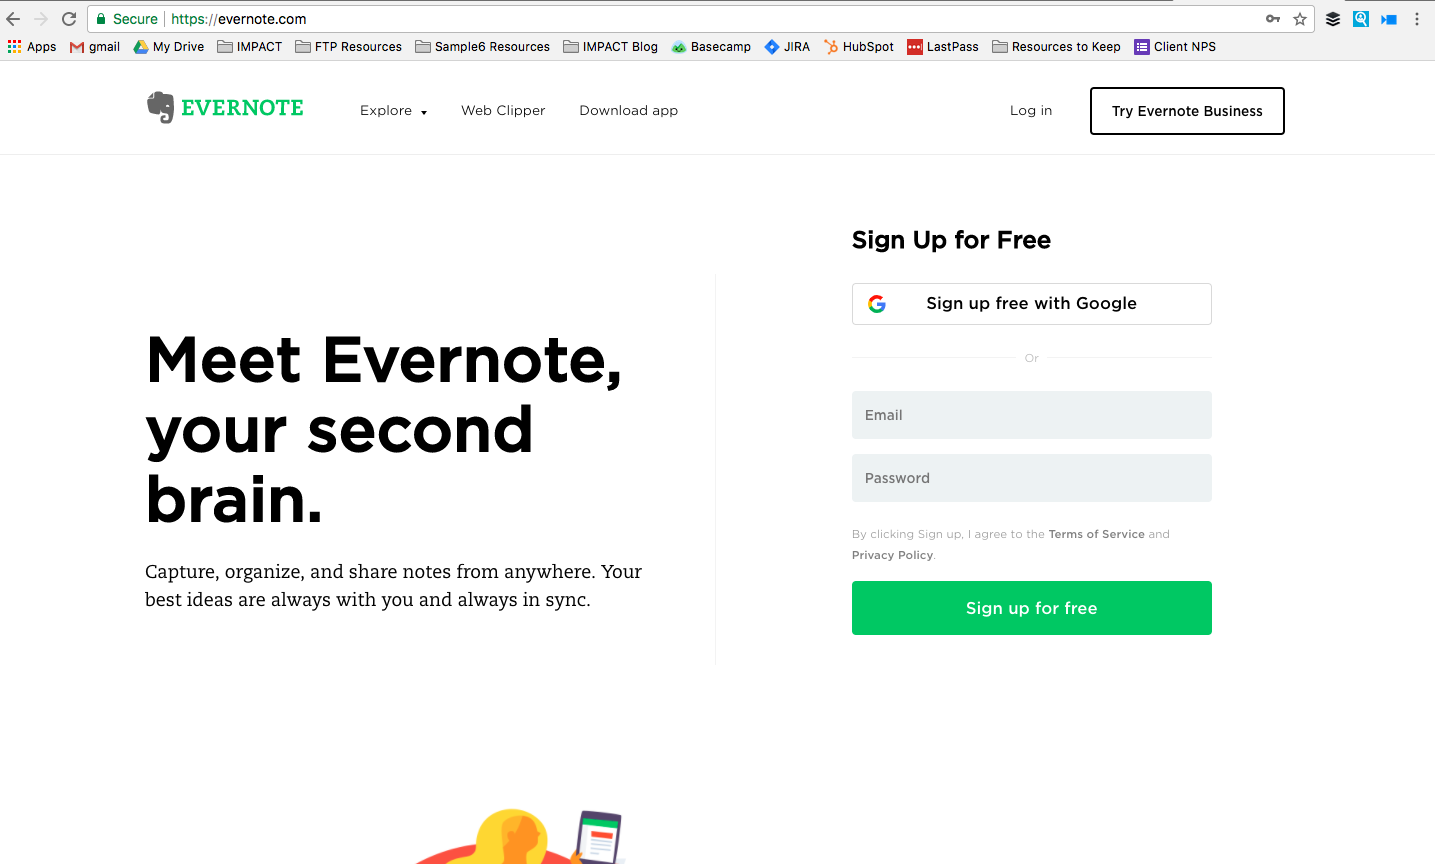 evernote-homepage.png